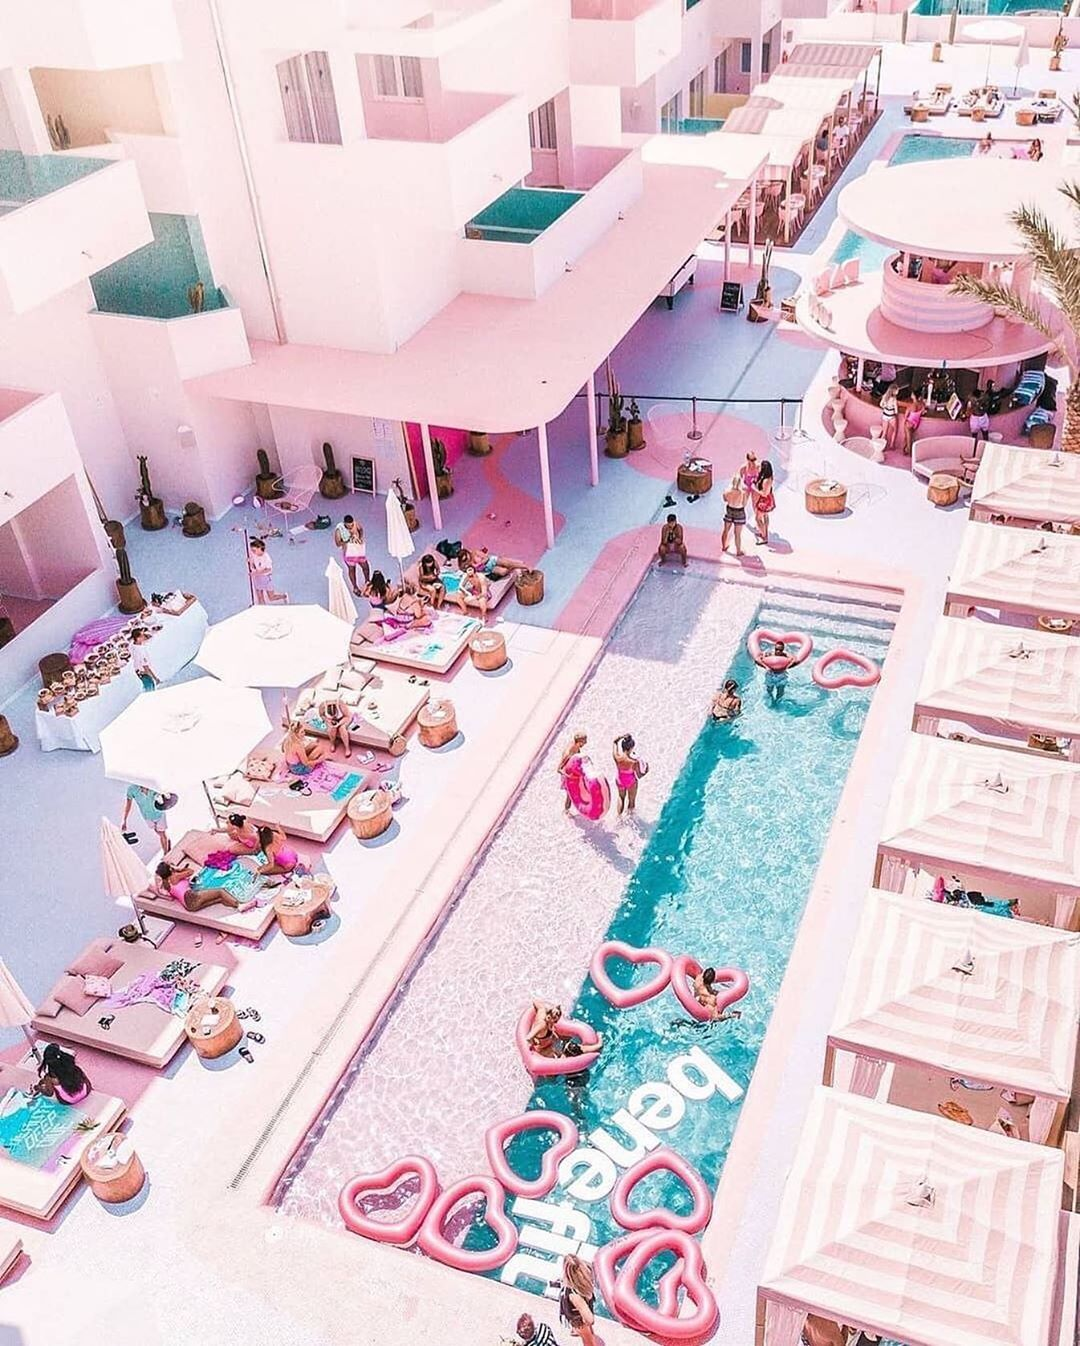 Uncommon Hotels On Instagram Pink Vibes At The Paradiso Ibiza Art Hotel In Ibiza Spain Uncommonhotels Harrison Parad Pink Hotel Hotel Ibiza Ibiza